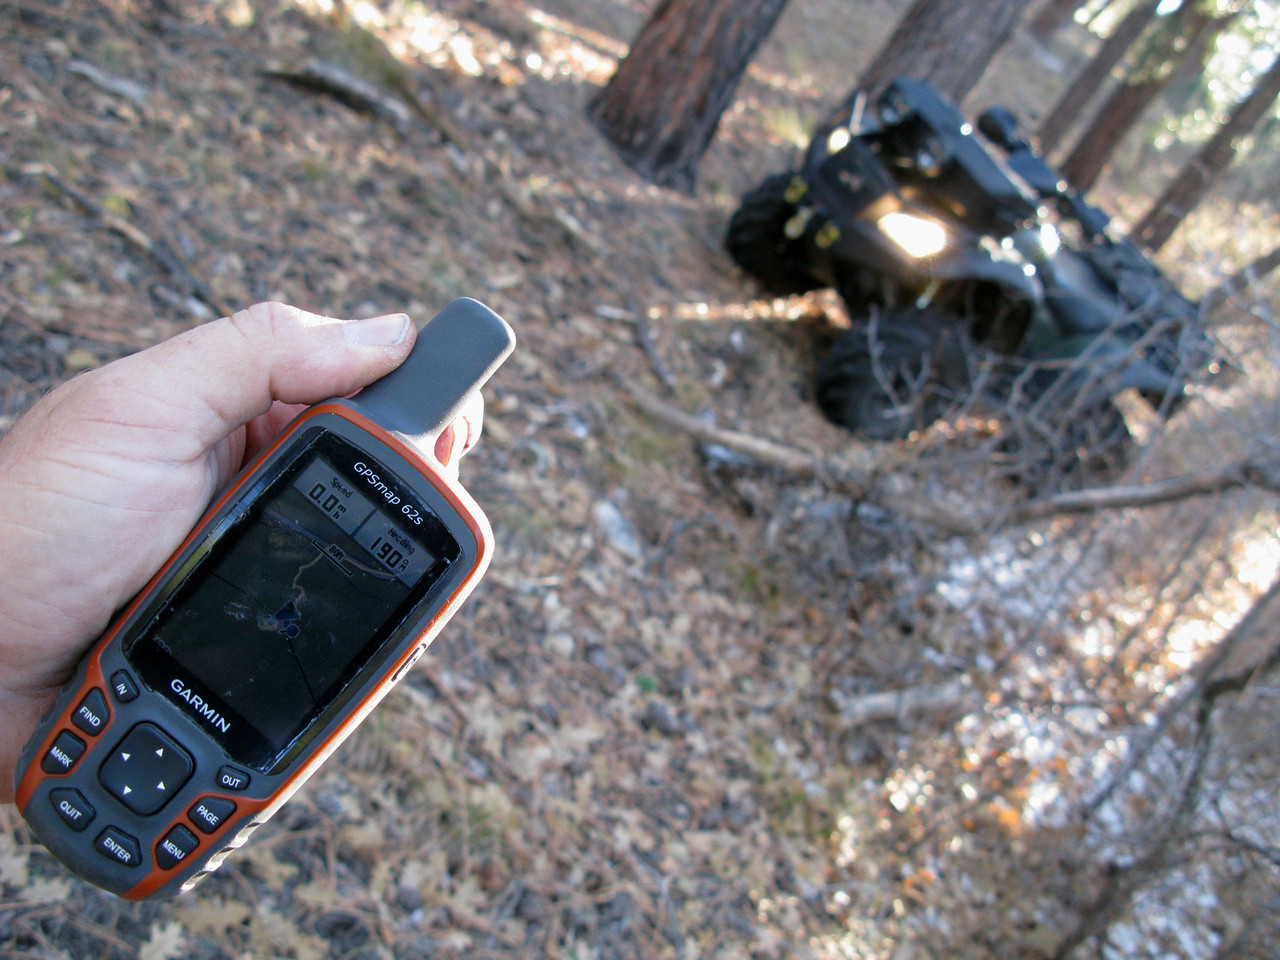 After making a long hike to the Point Sublime Road, I finally found my ATV. Gotta love these hand-held GPS receivers!